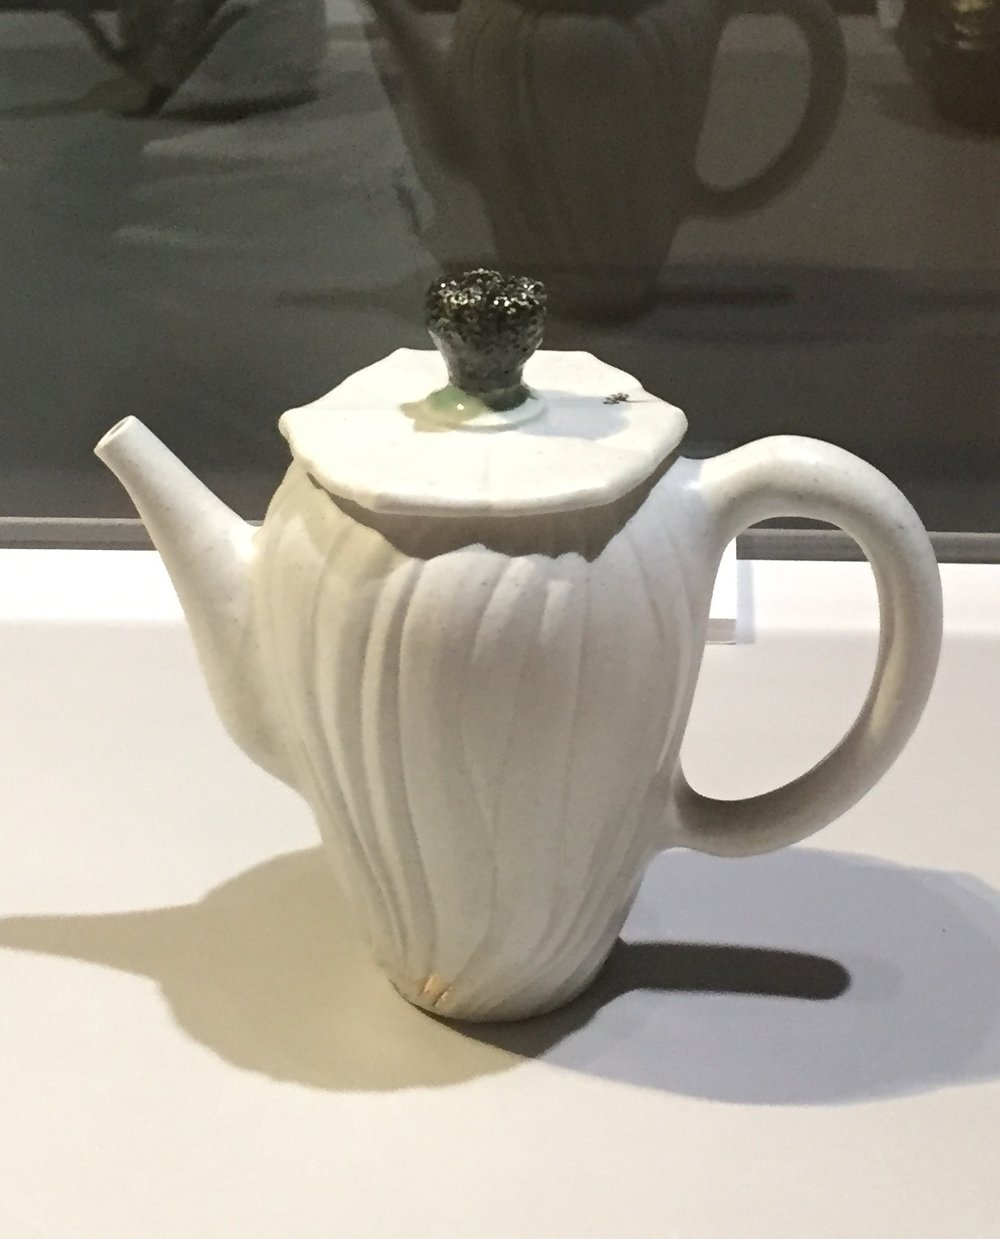 Love this teapot.